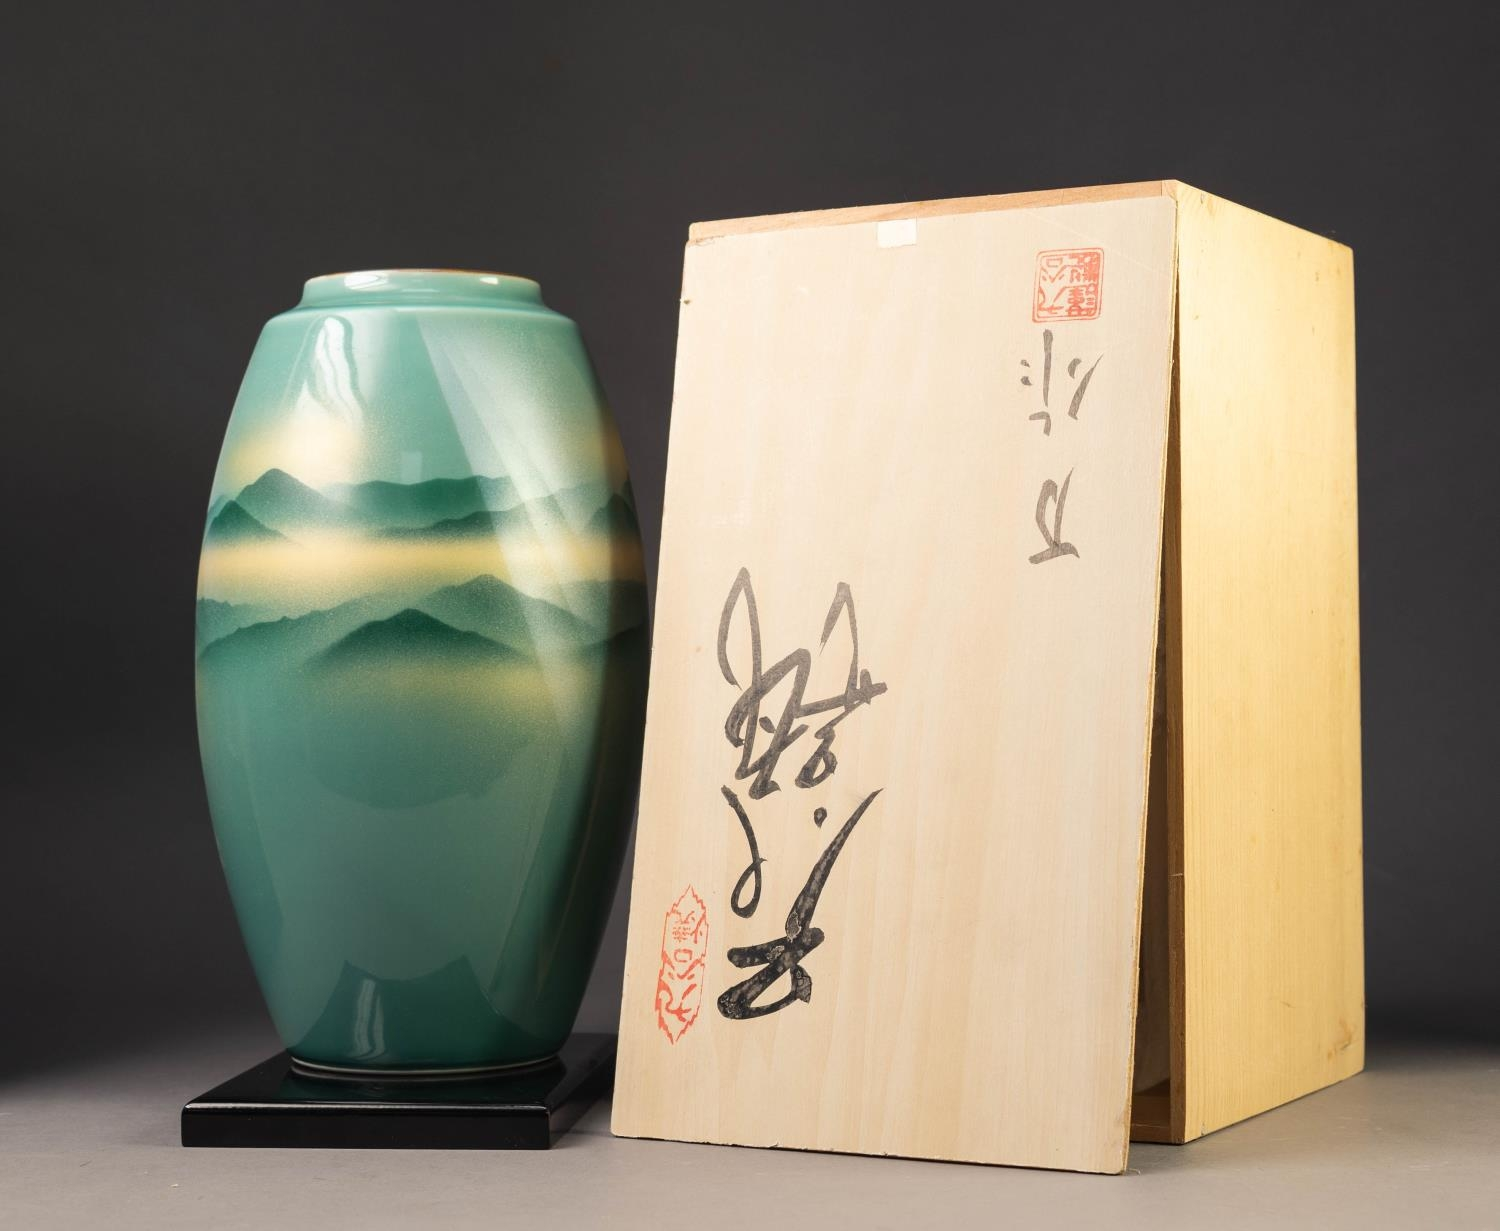 MODERN JAPANESE KUTANI WARE PORCELAIN VASE, of ovoid form, decorated in sprayed shades of green - Image 5 of 5